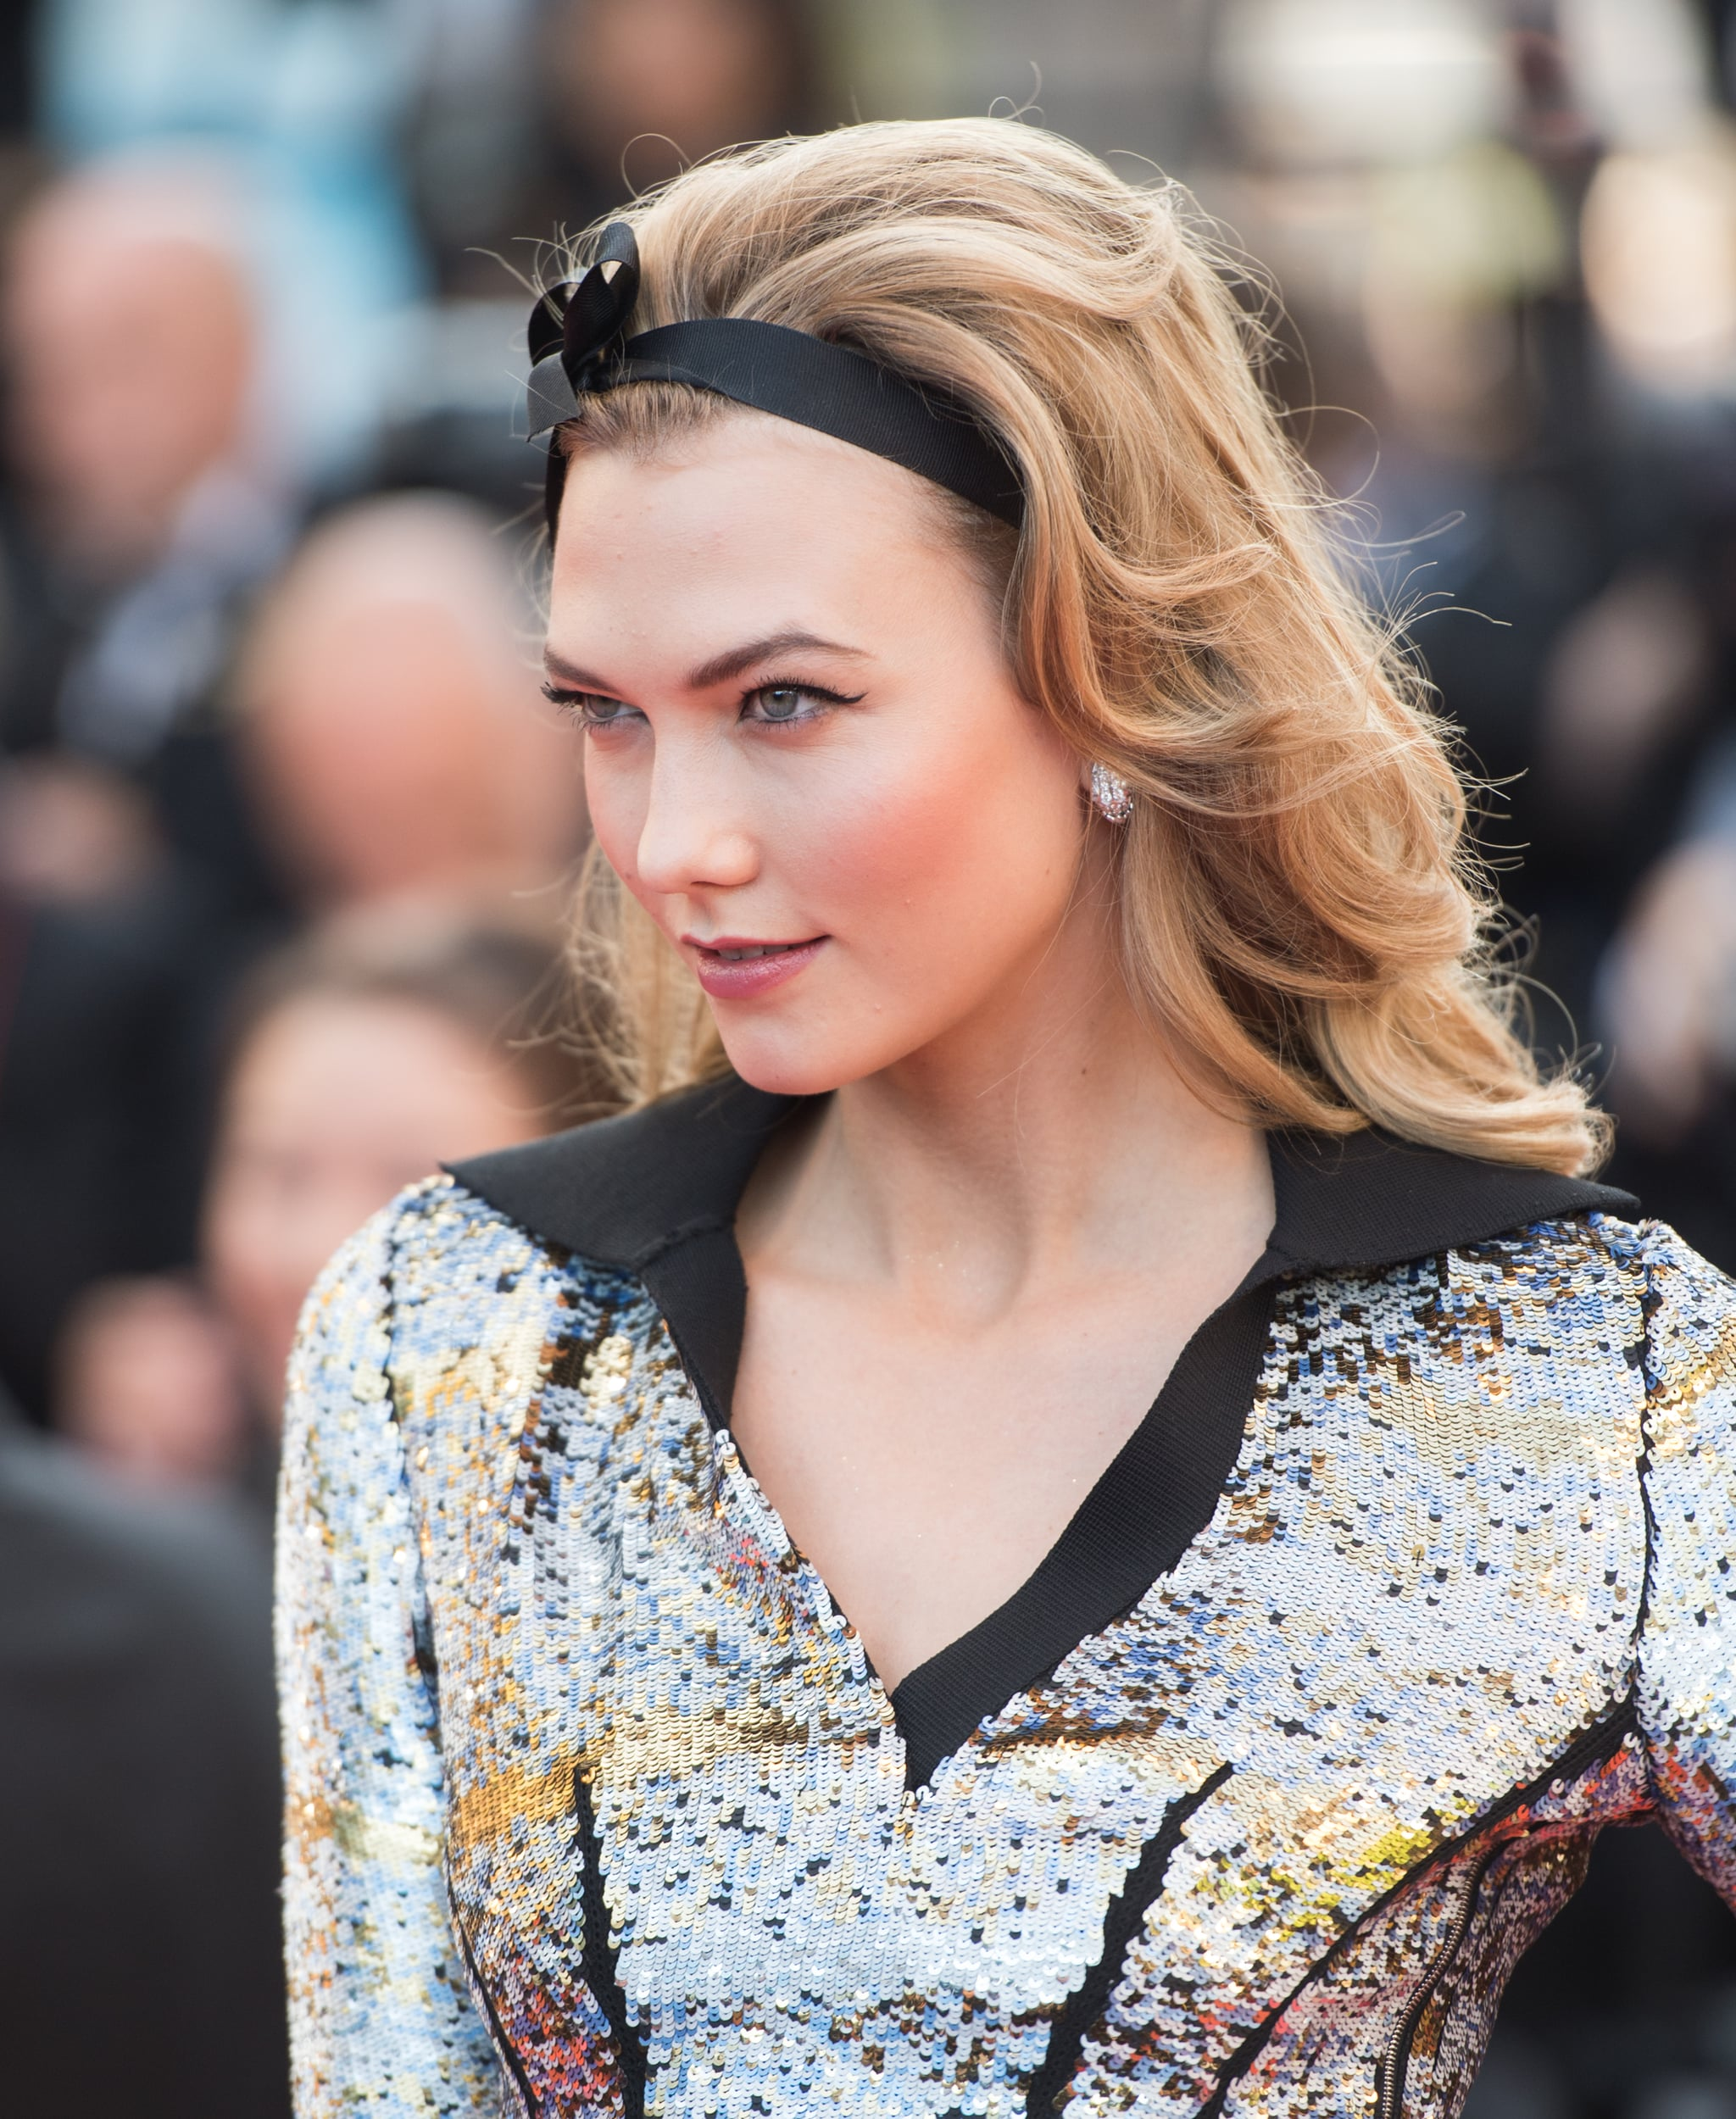 3 Grown-Up Ways to Wear a Ribbon in Your Hair